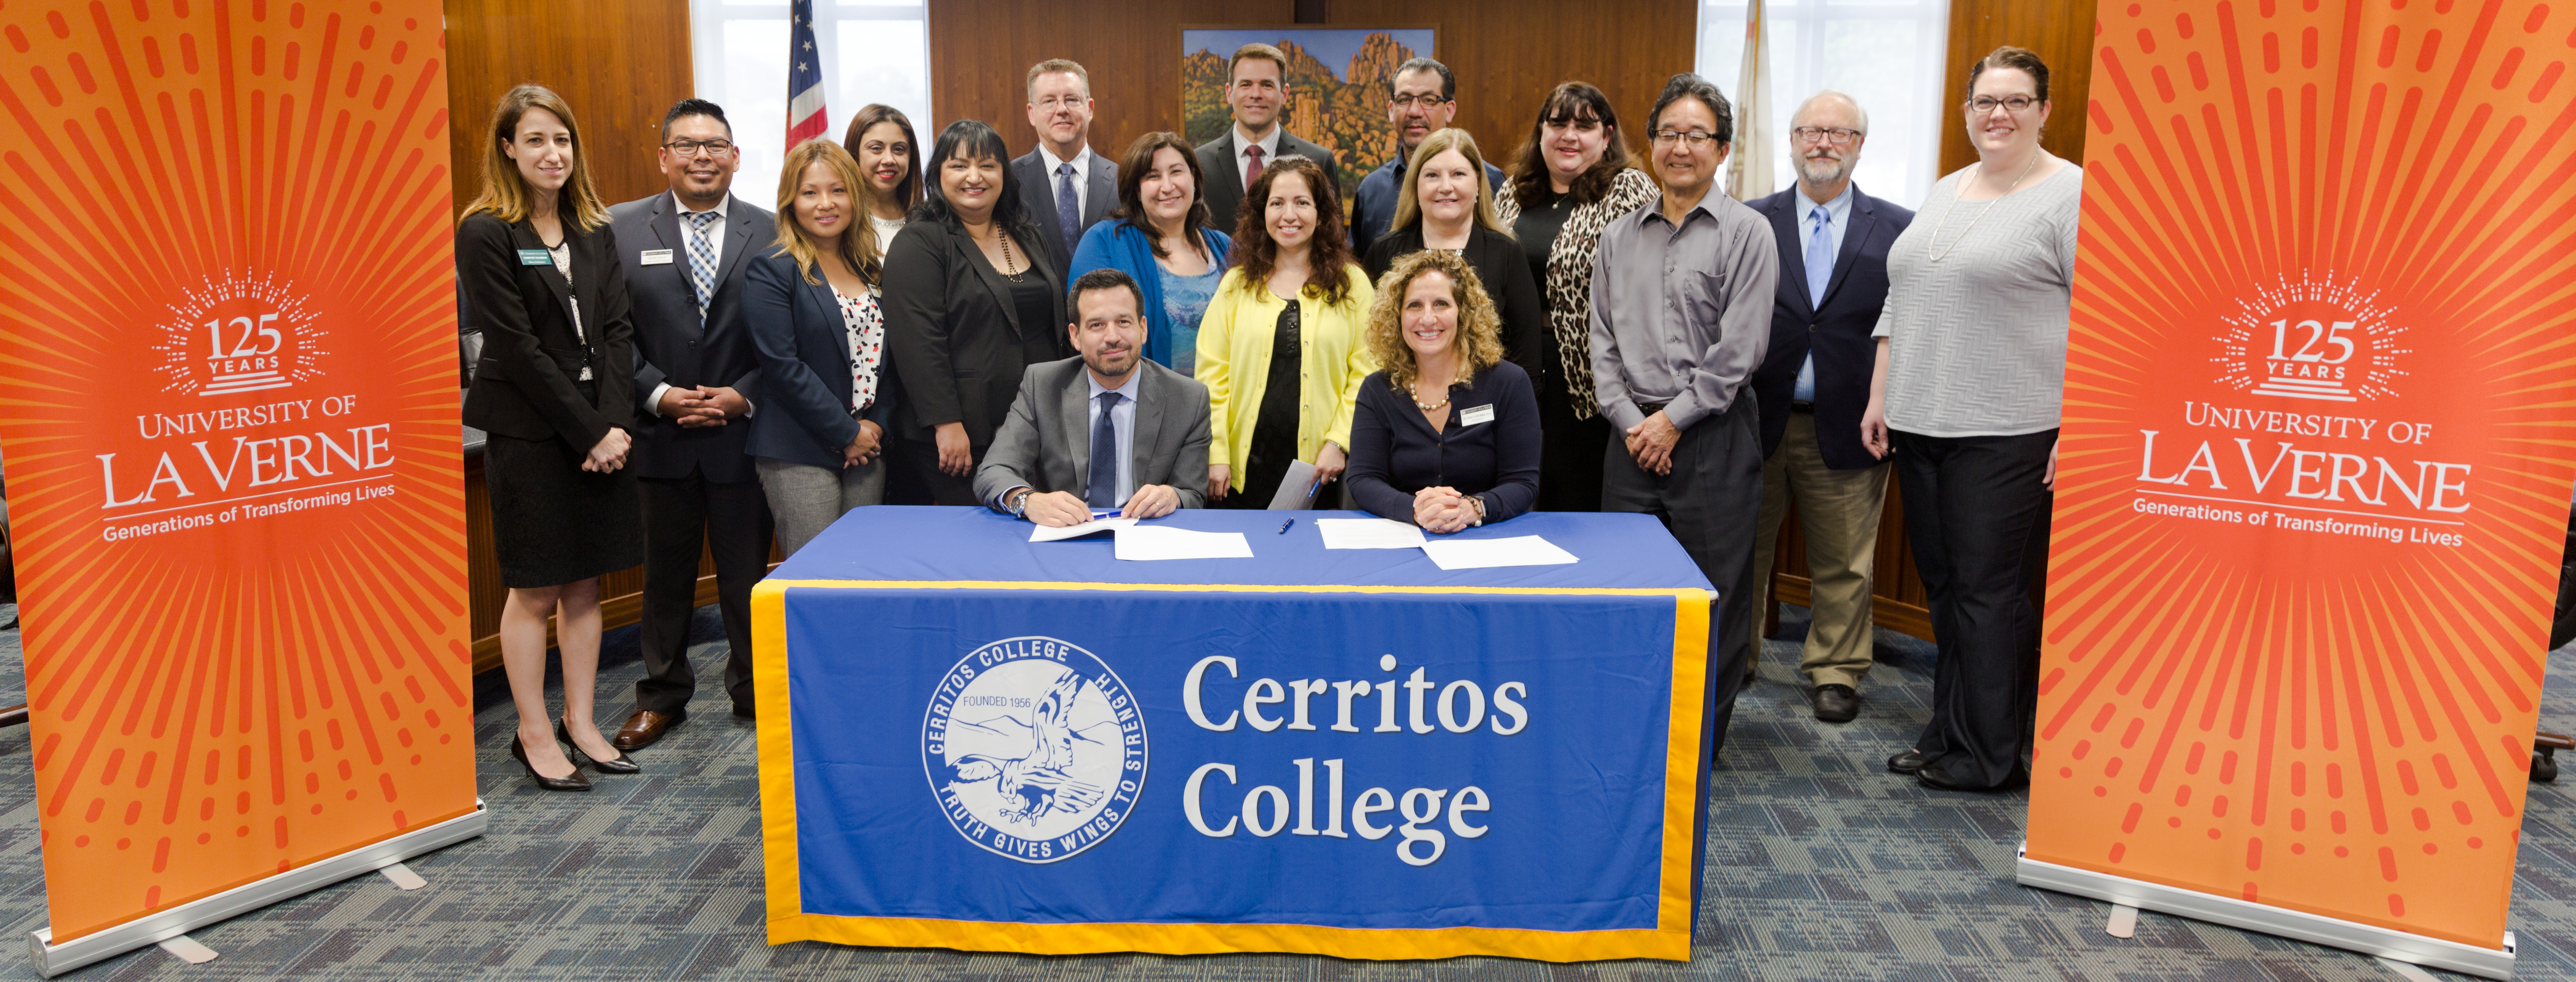 ULV Partners with Cerritos College | University of La Verne